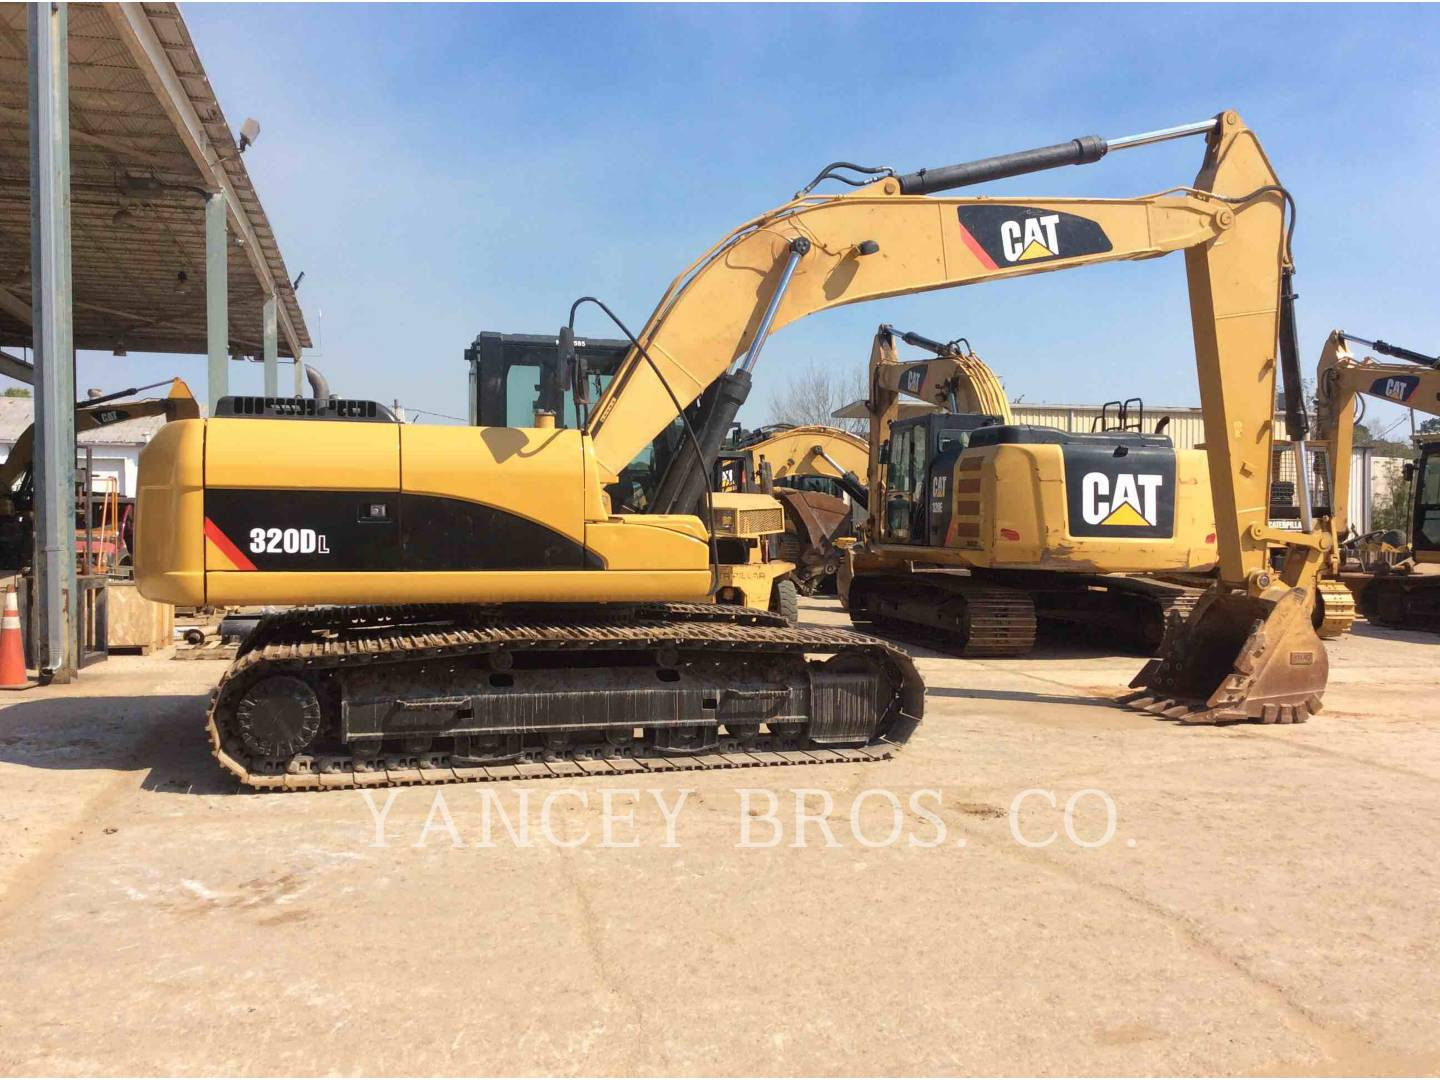 2012 - CATERPILLAR - 320DL